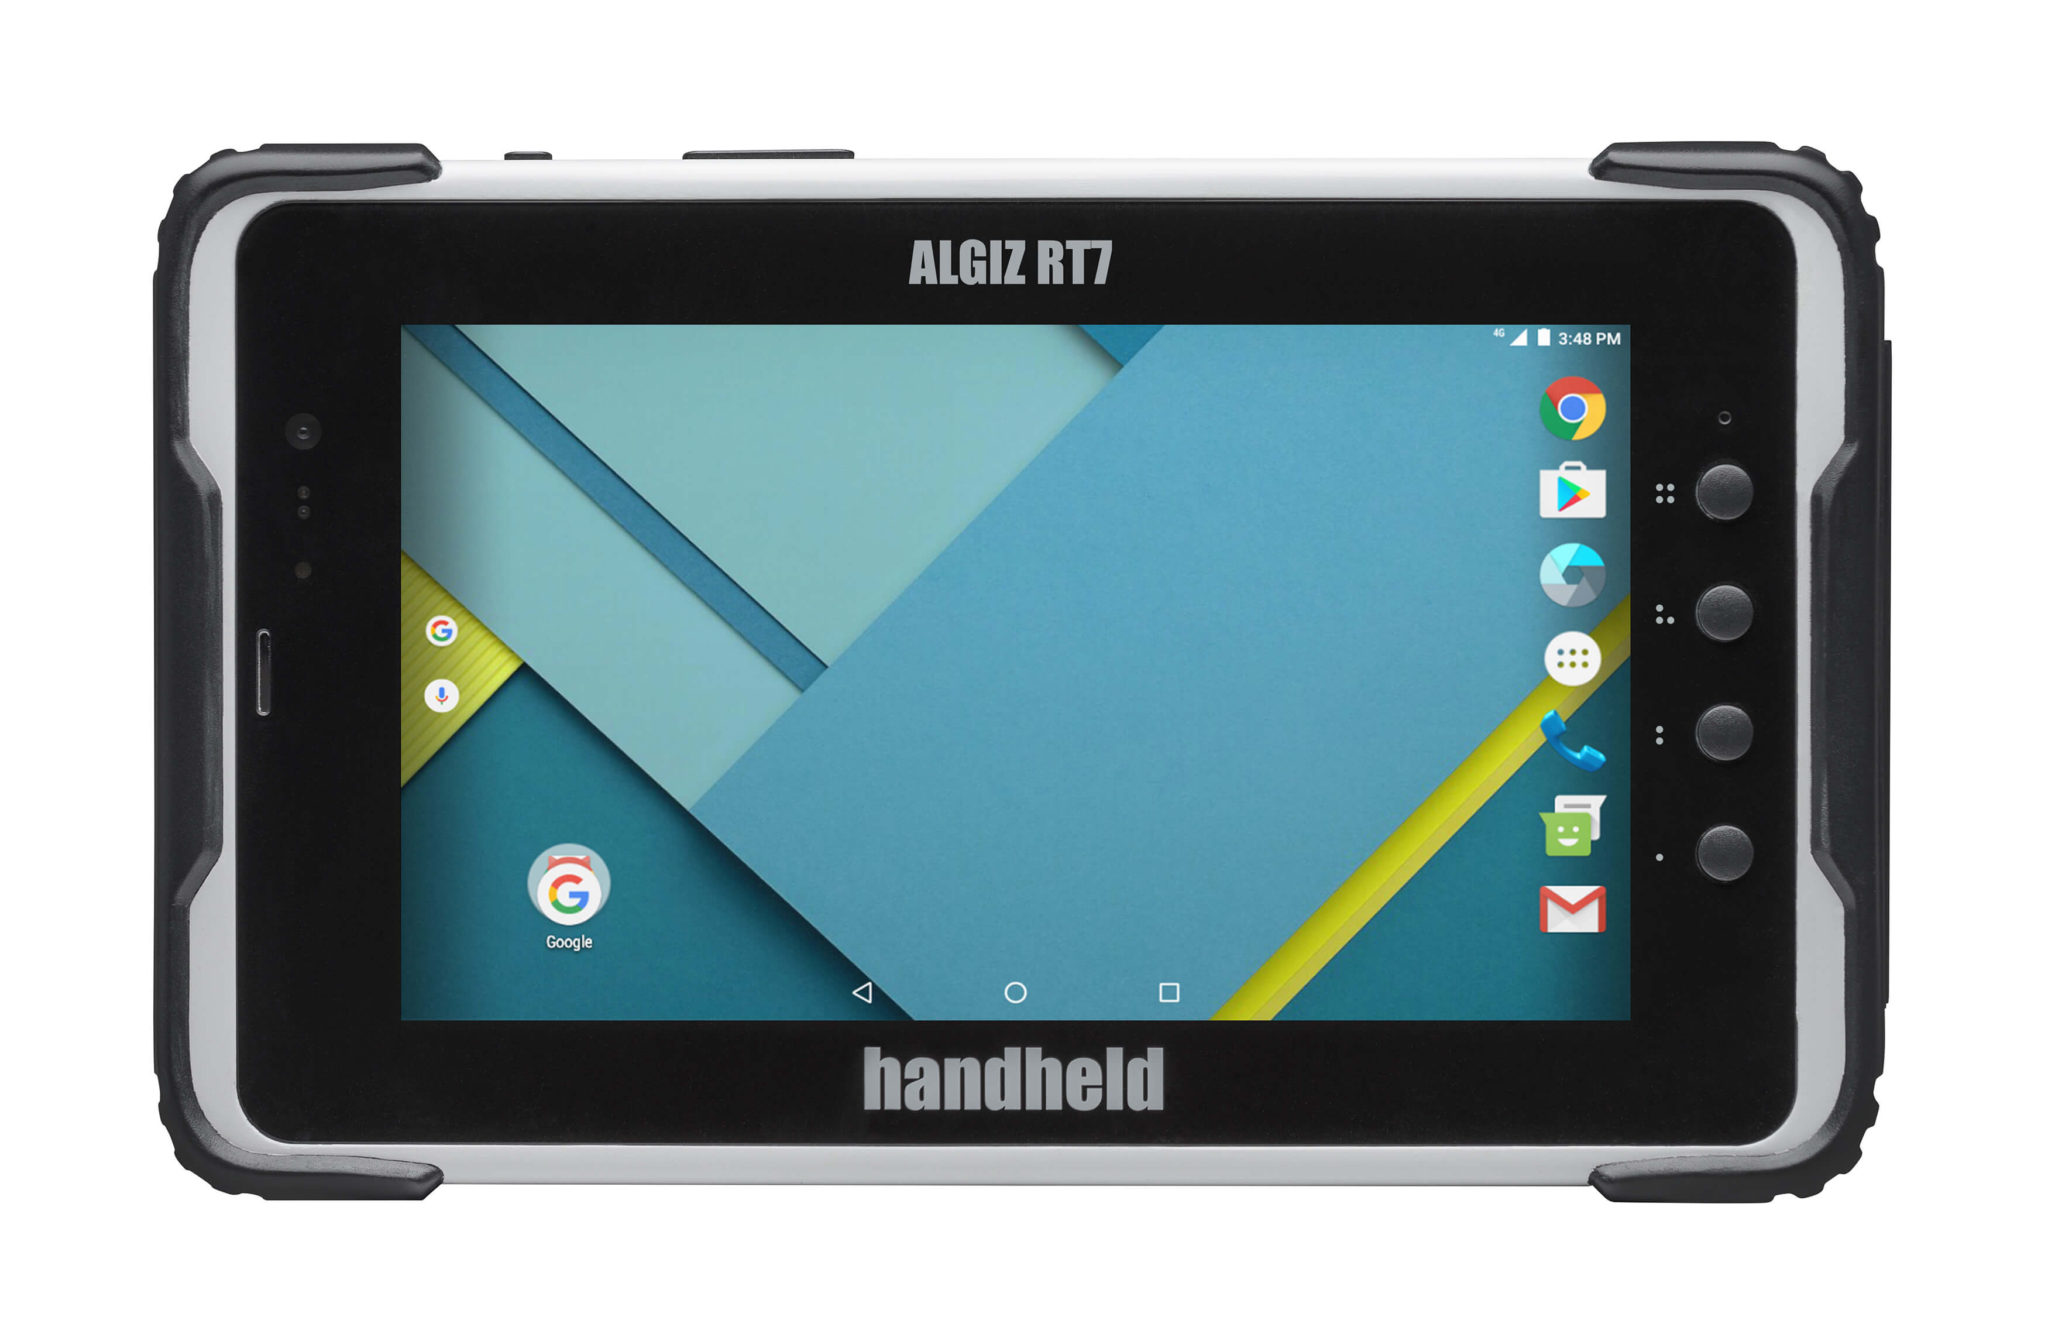 Algiz-RT7-rugged-tablet-pc-front-Android-6